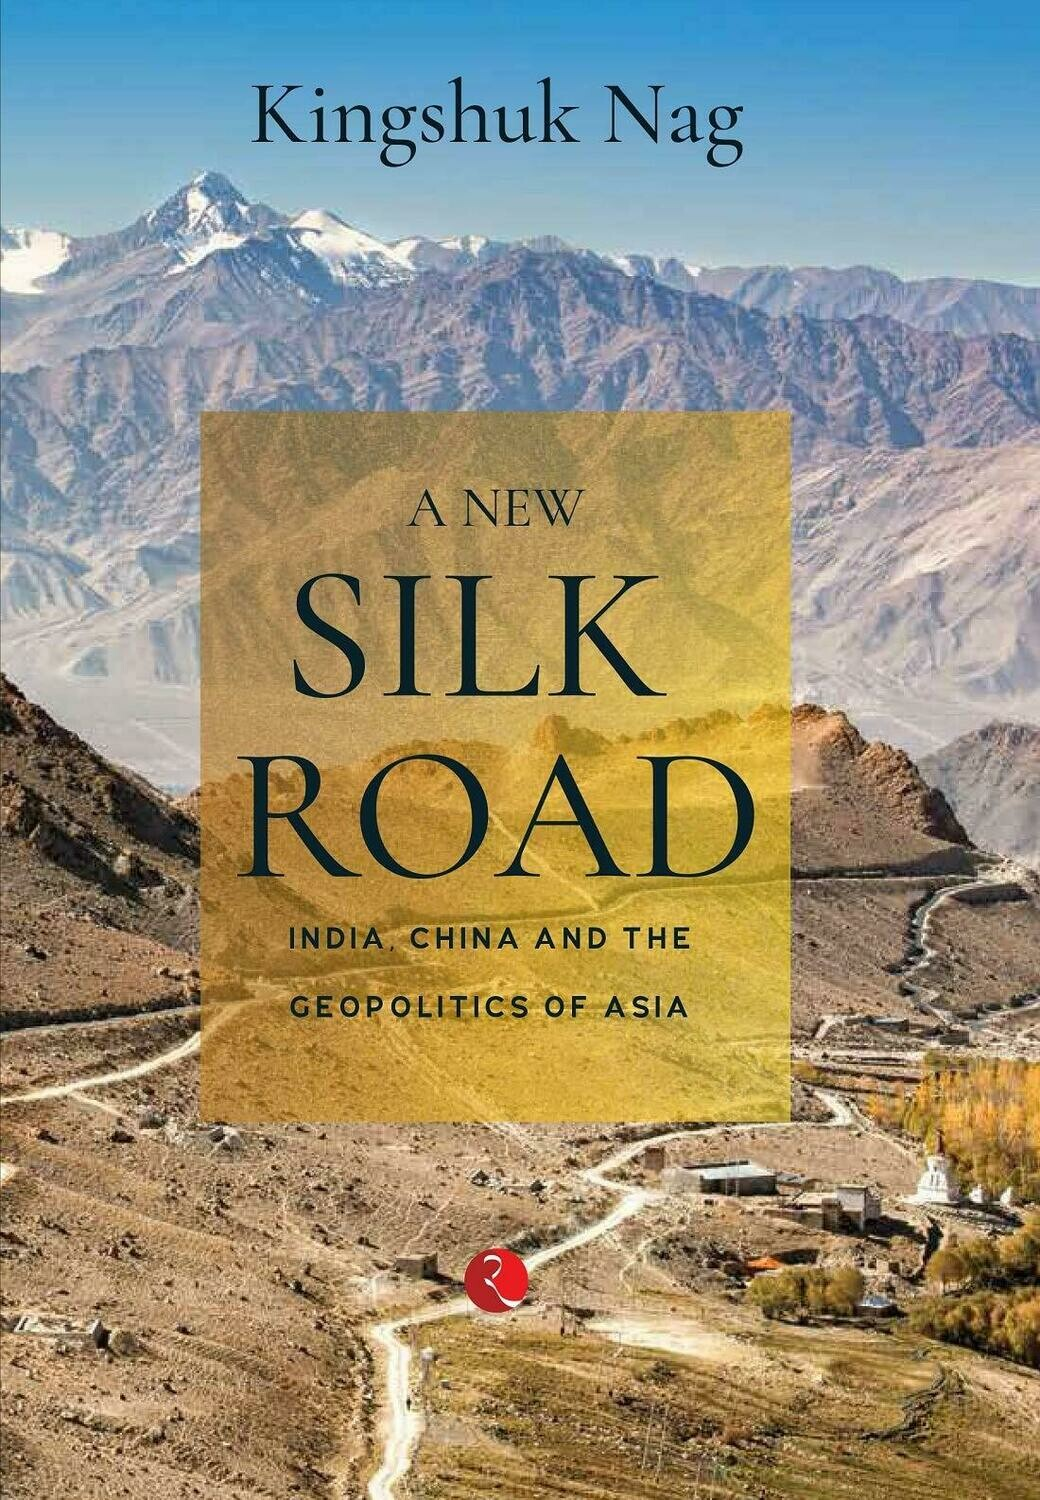 A NEW SILK ROAD: India, China and the Geopolitics of Asia